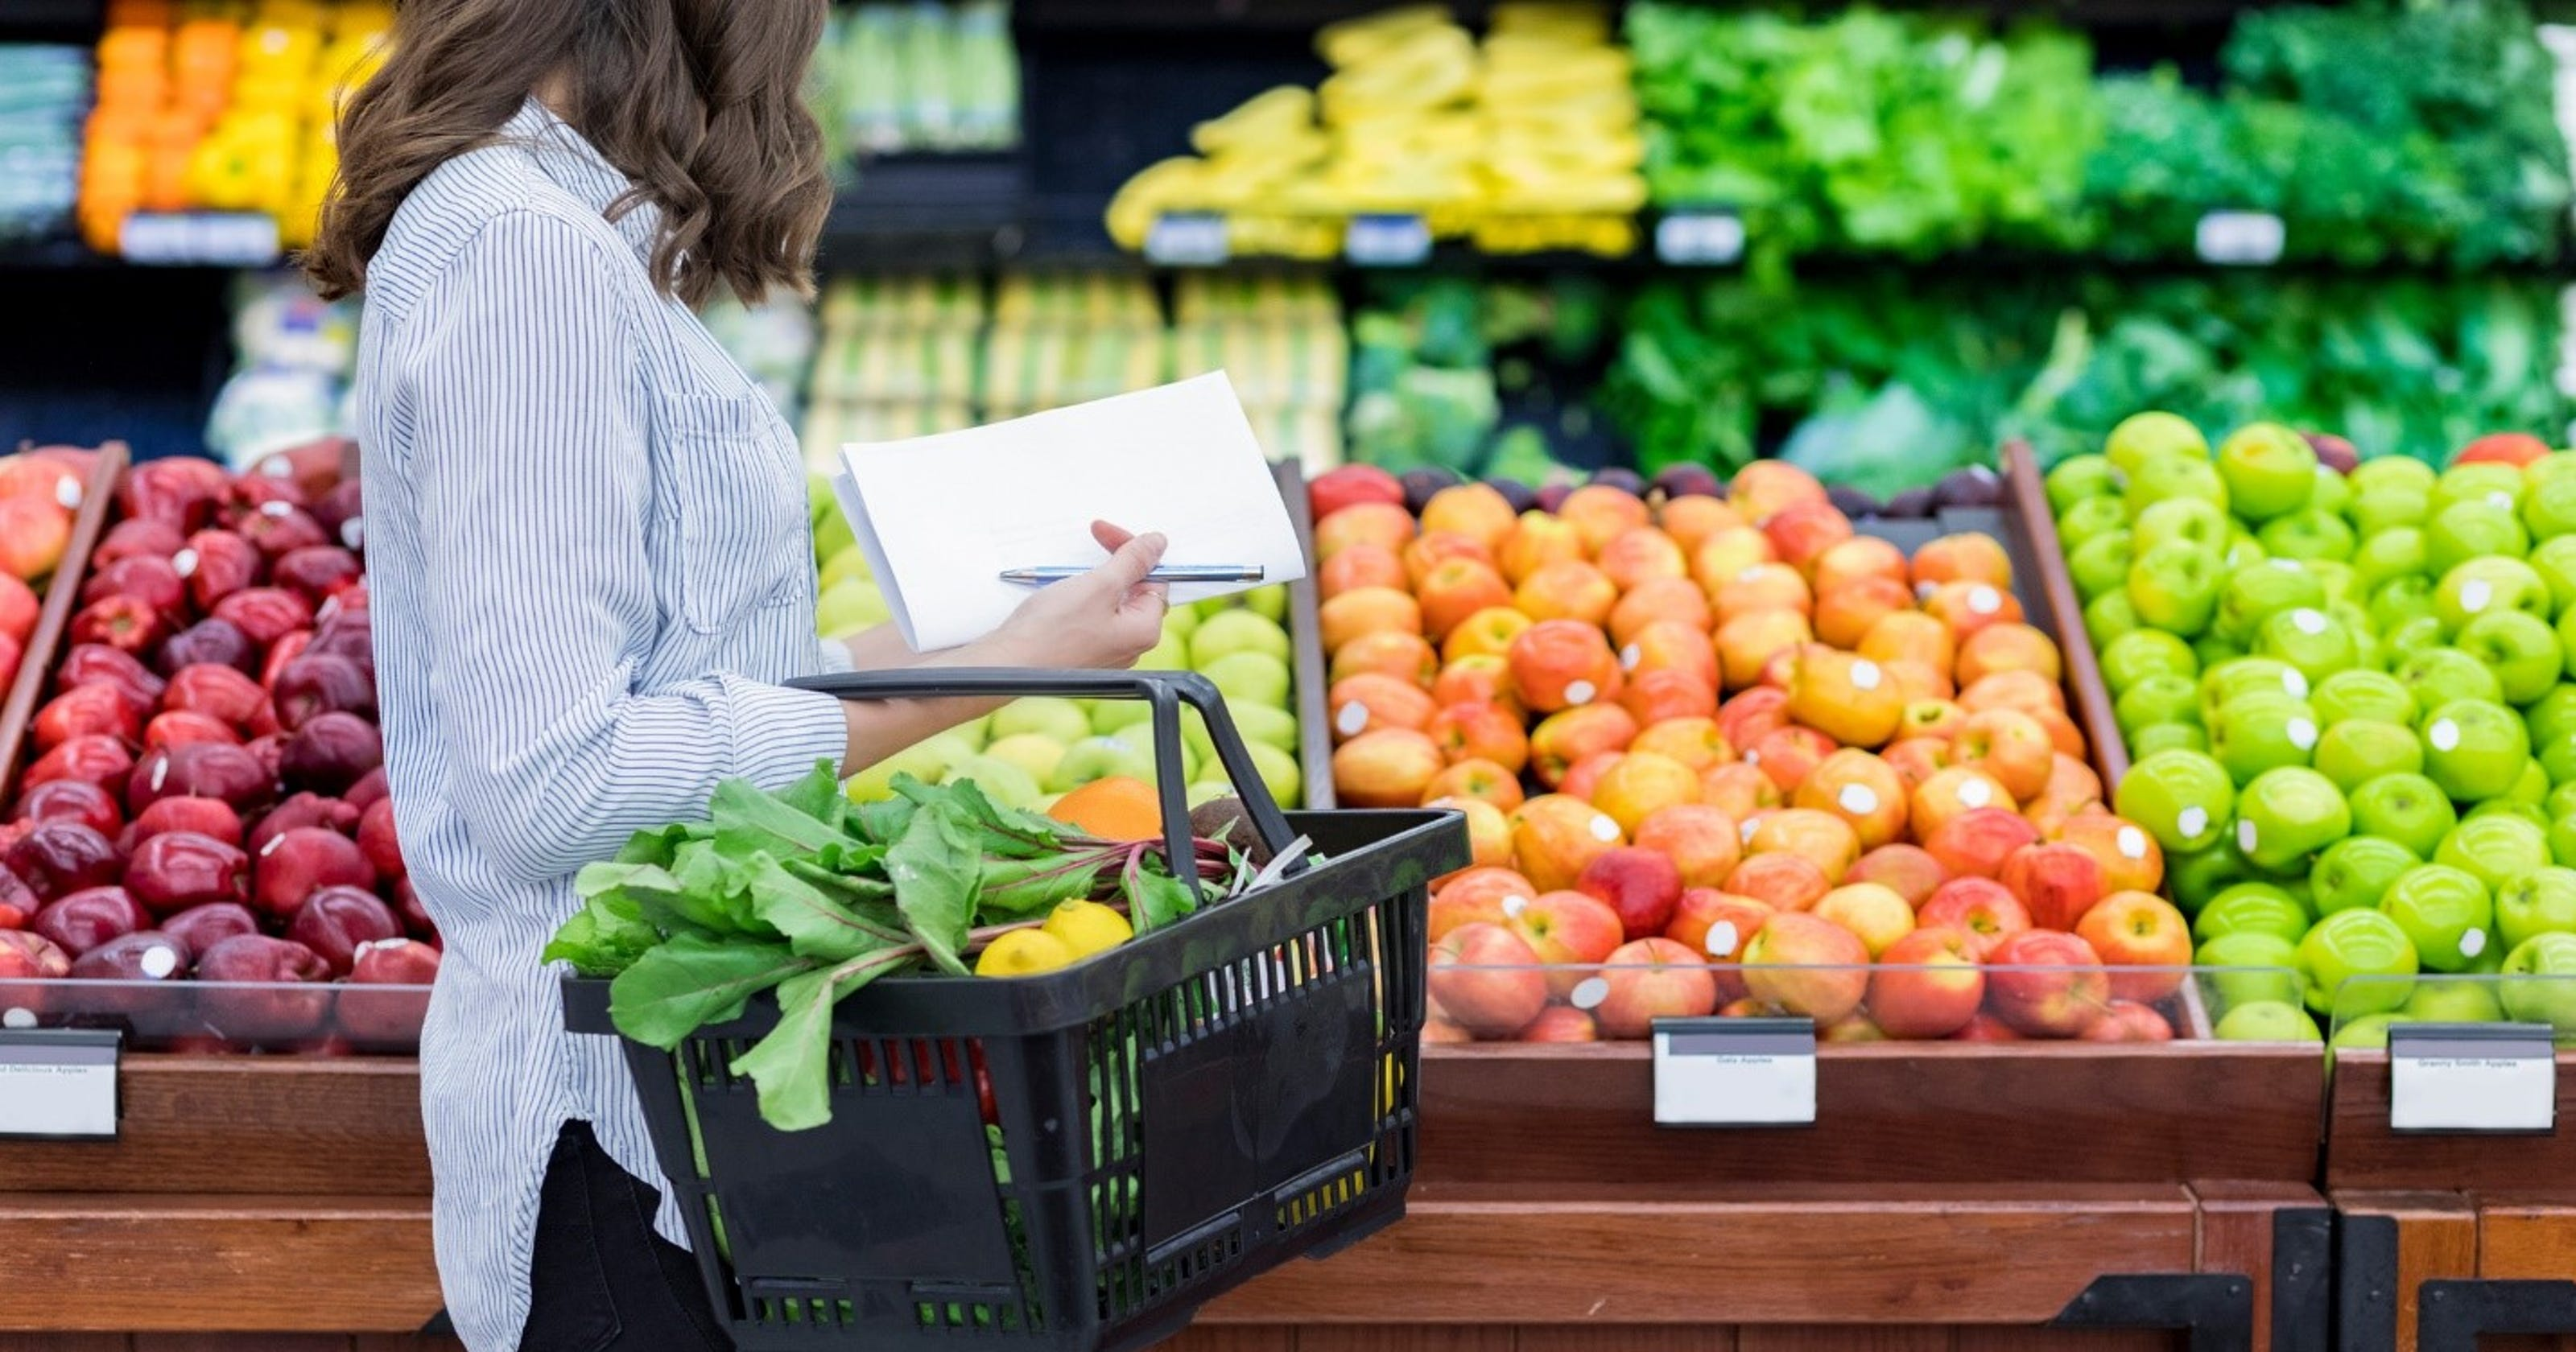 The top diet trends for 2019